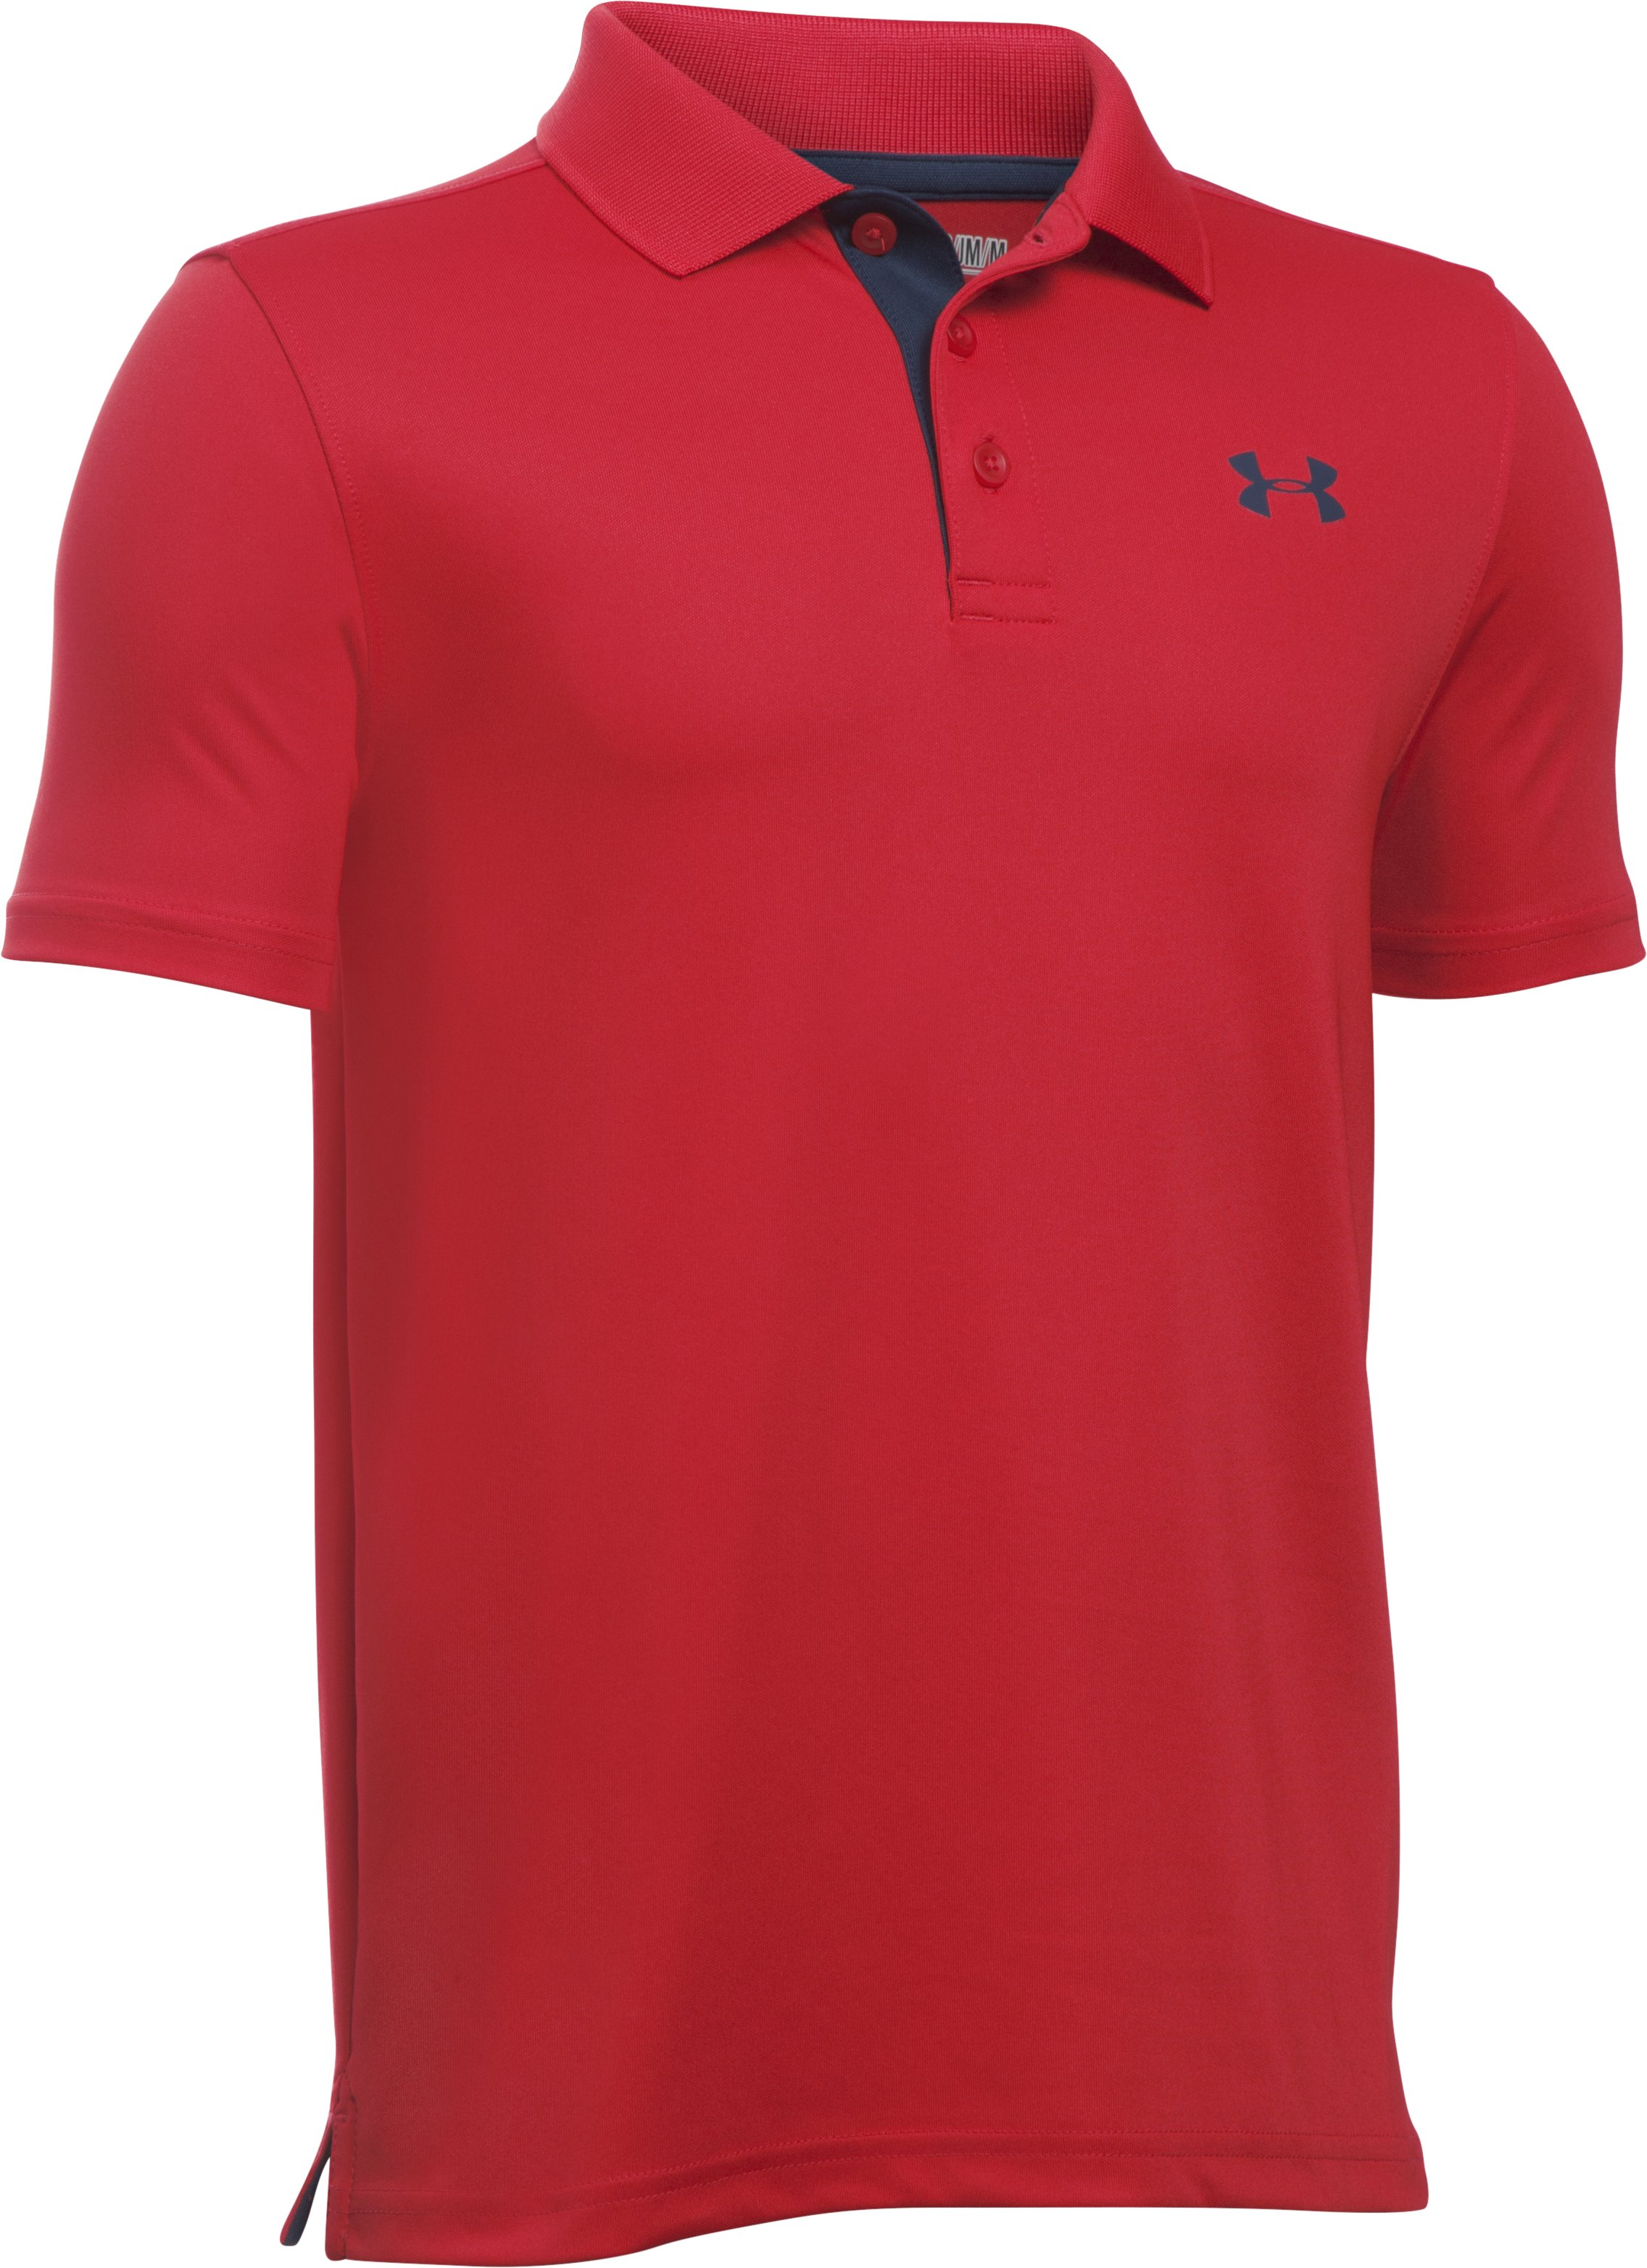 Boys' UA Performance Polo, Red, undefined